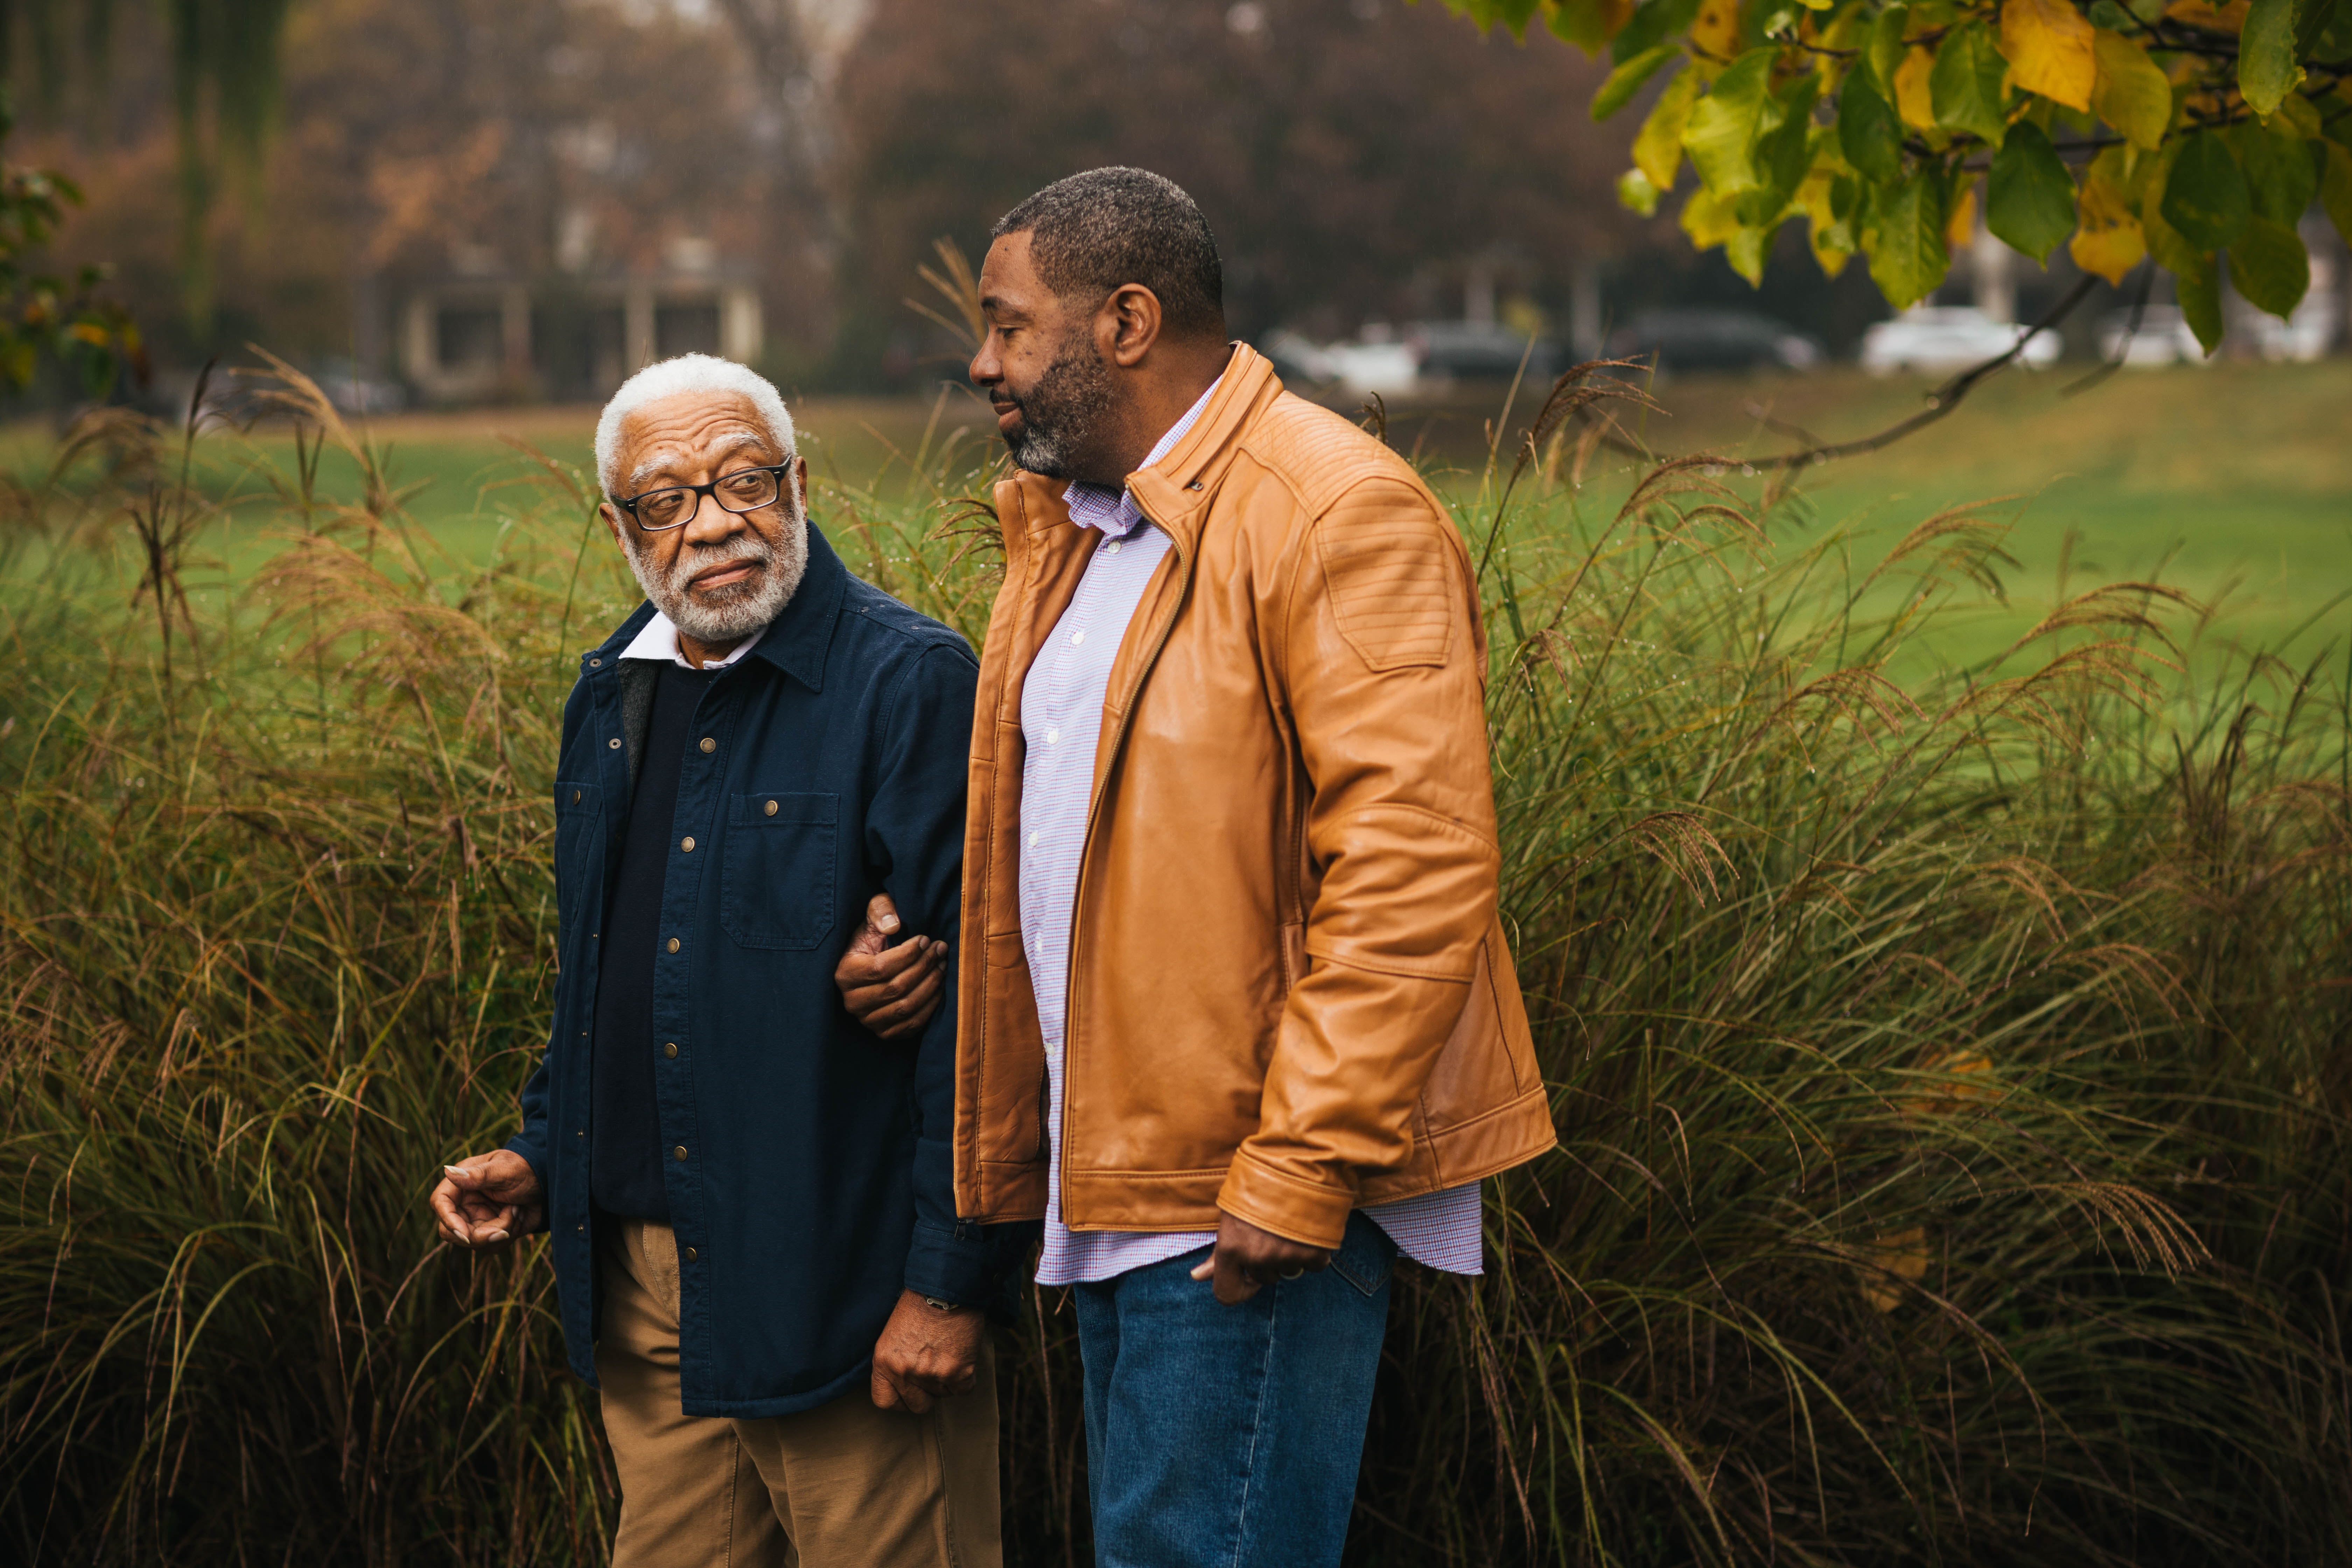 A son helps his father in Frederick, Maryland.